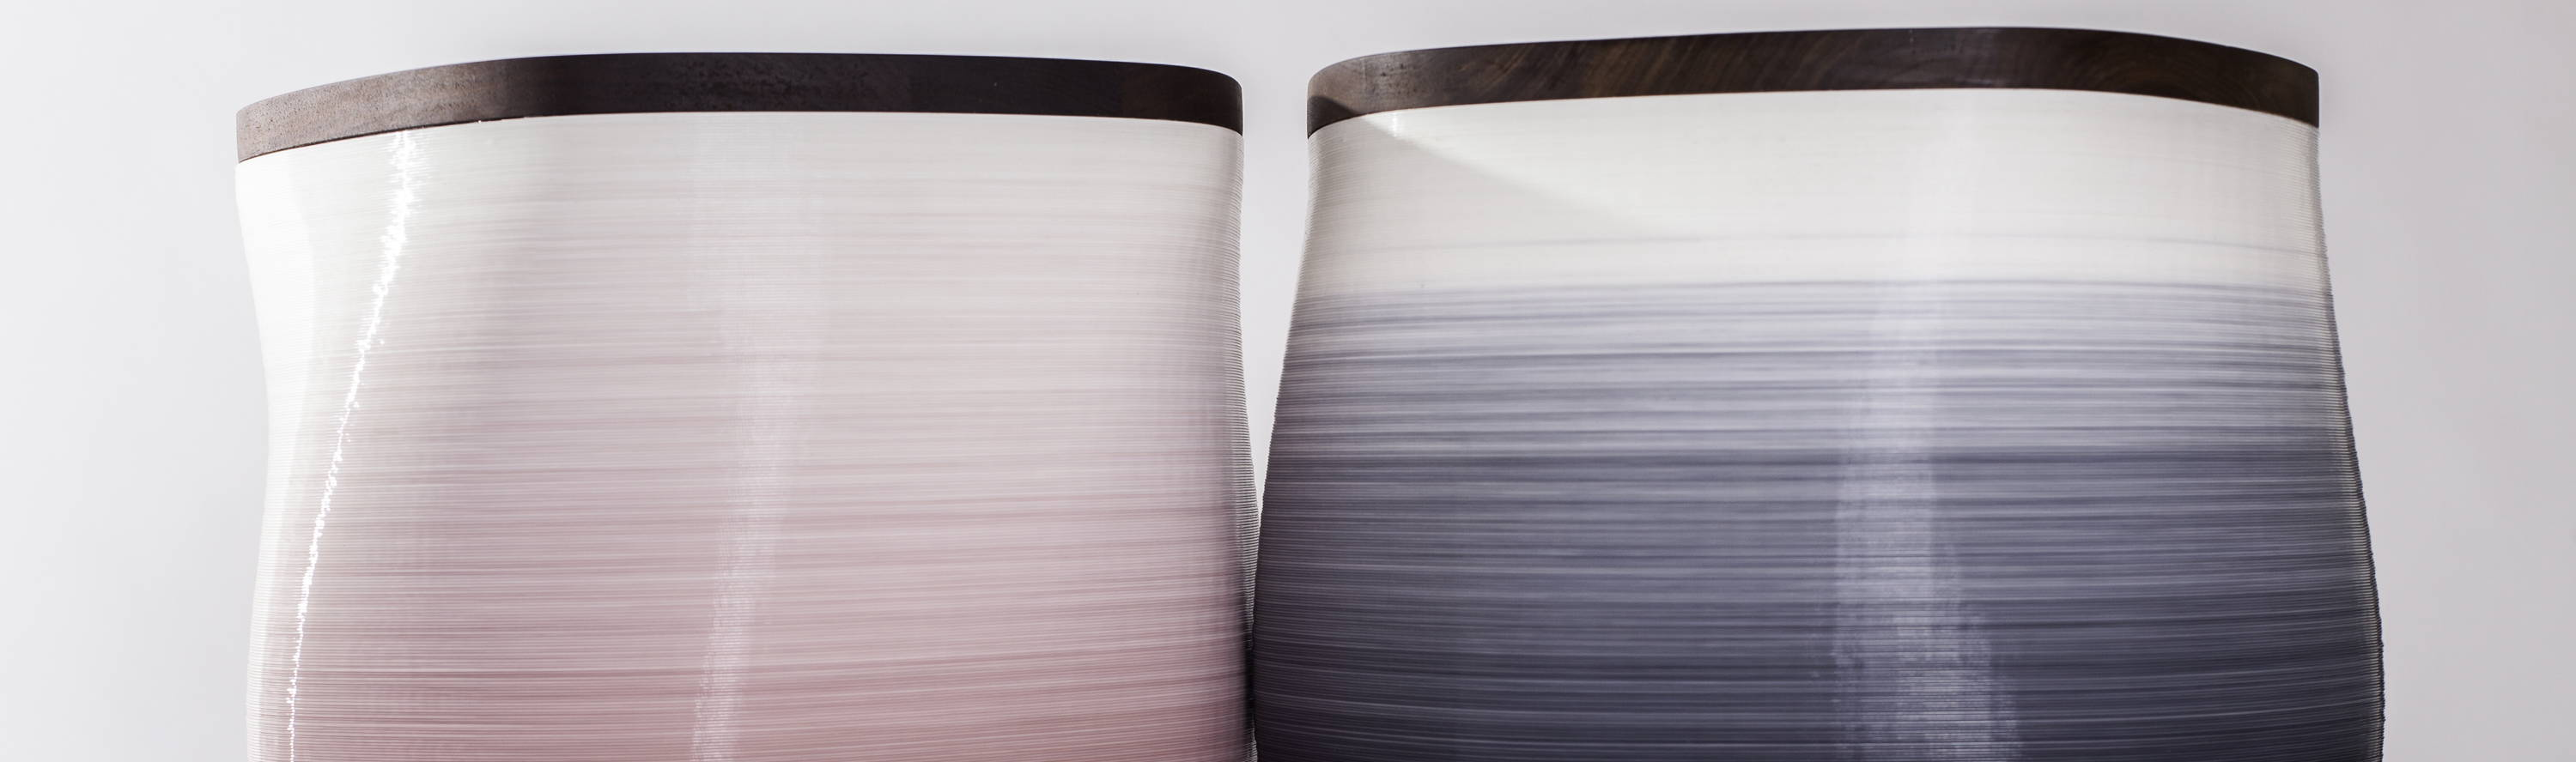 Mauve ombre side table next to black ombre side table made of plant based resin bases and hardwood tops